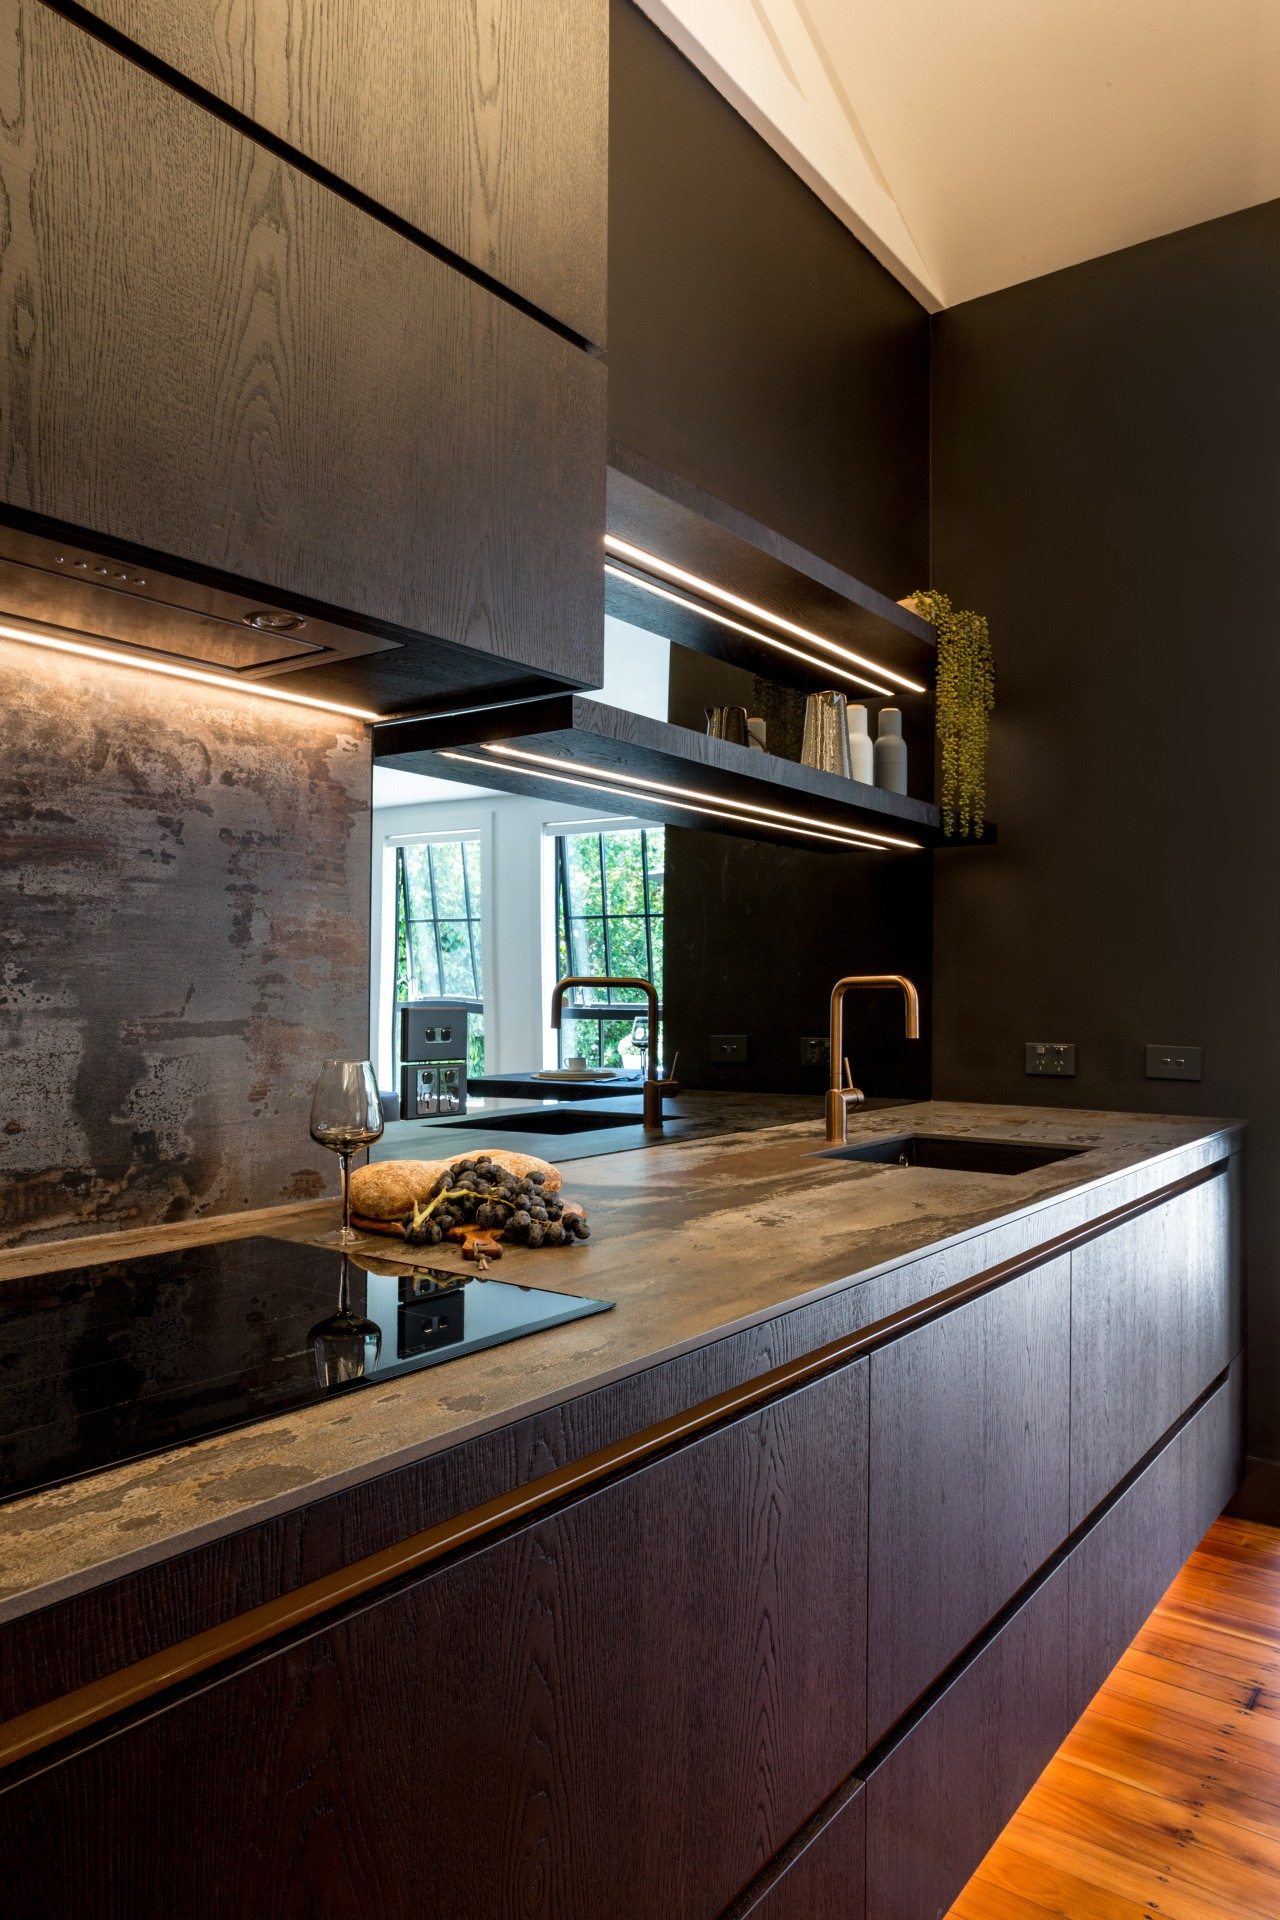 How best to accommodate a functional kitchen within black